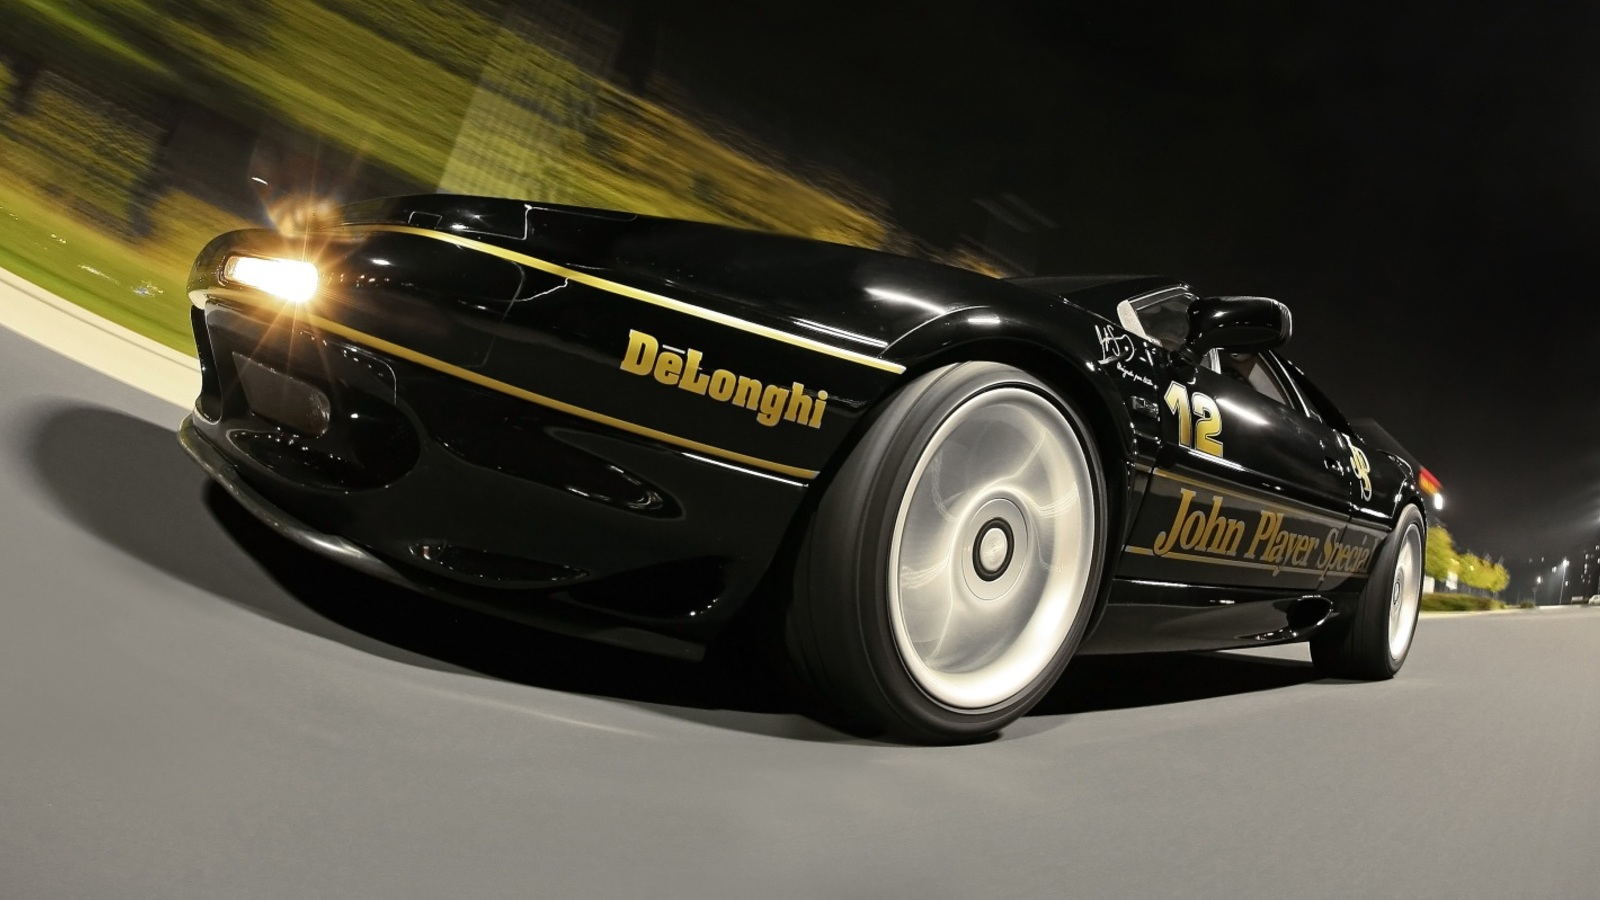 Cam Shaft celebrates Ayrton Senna with a premium vinyl wrap